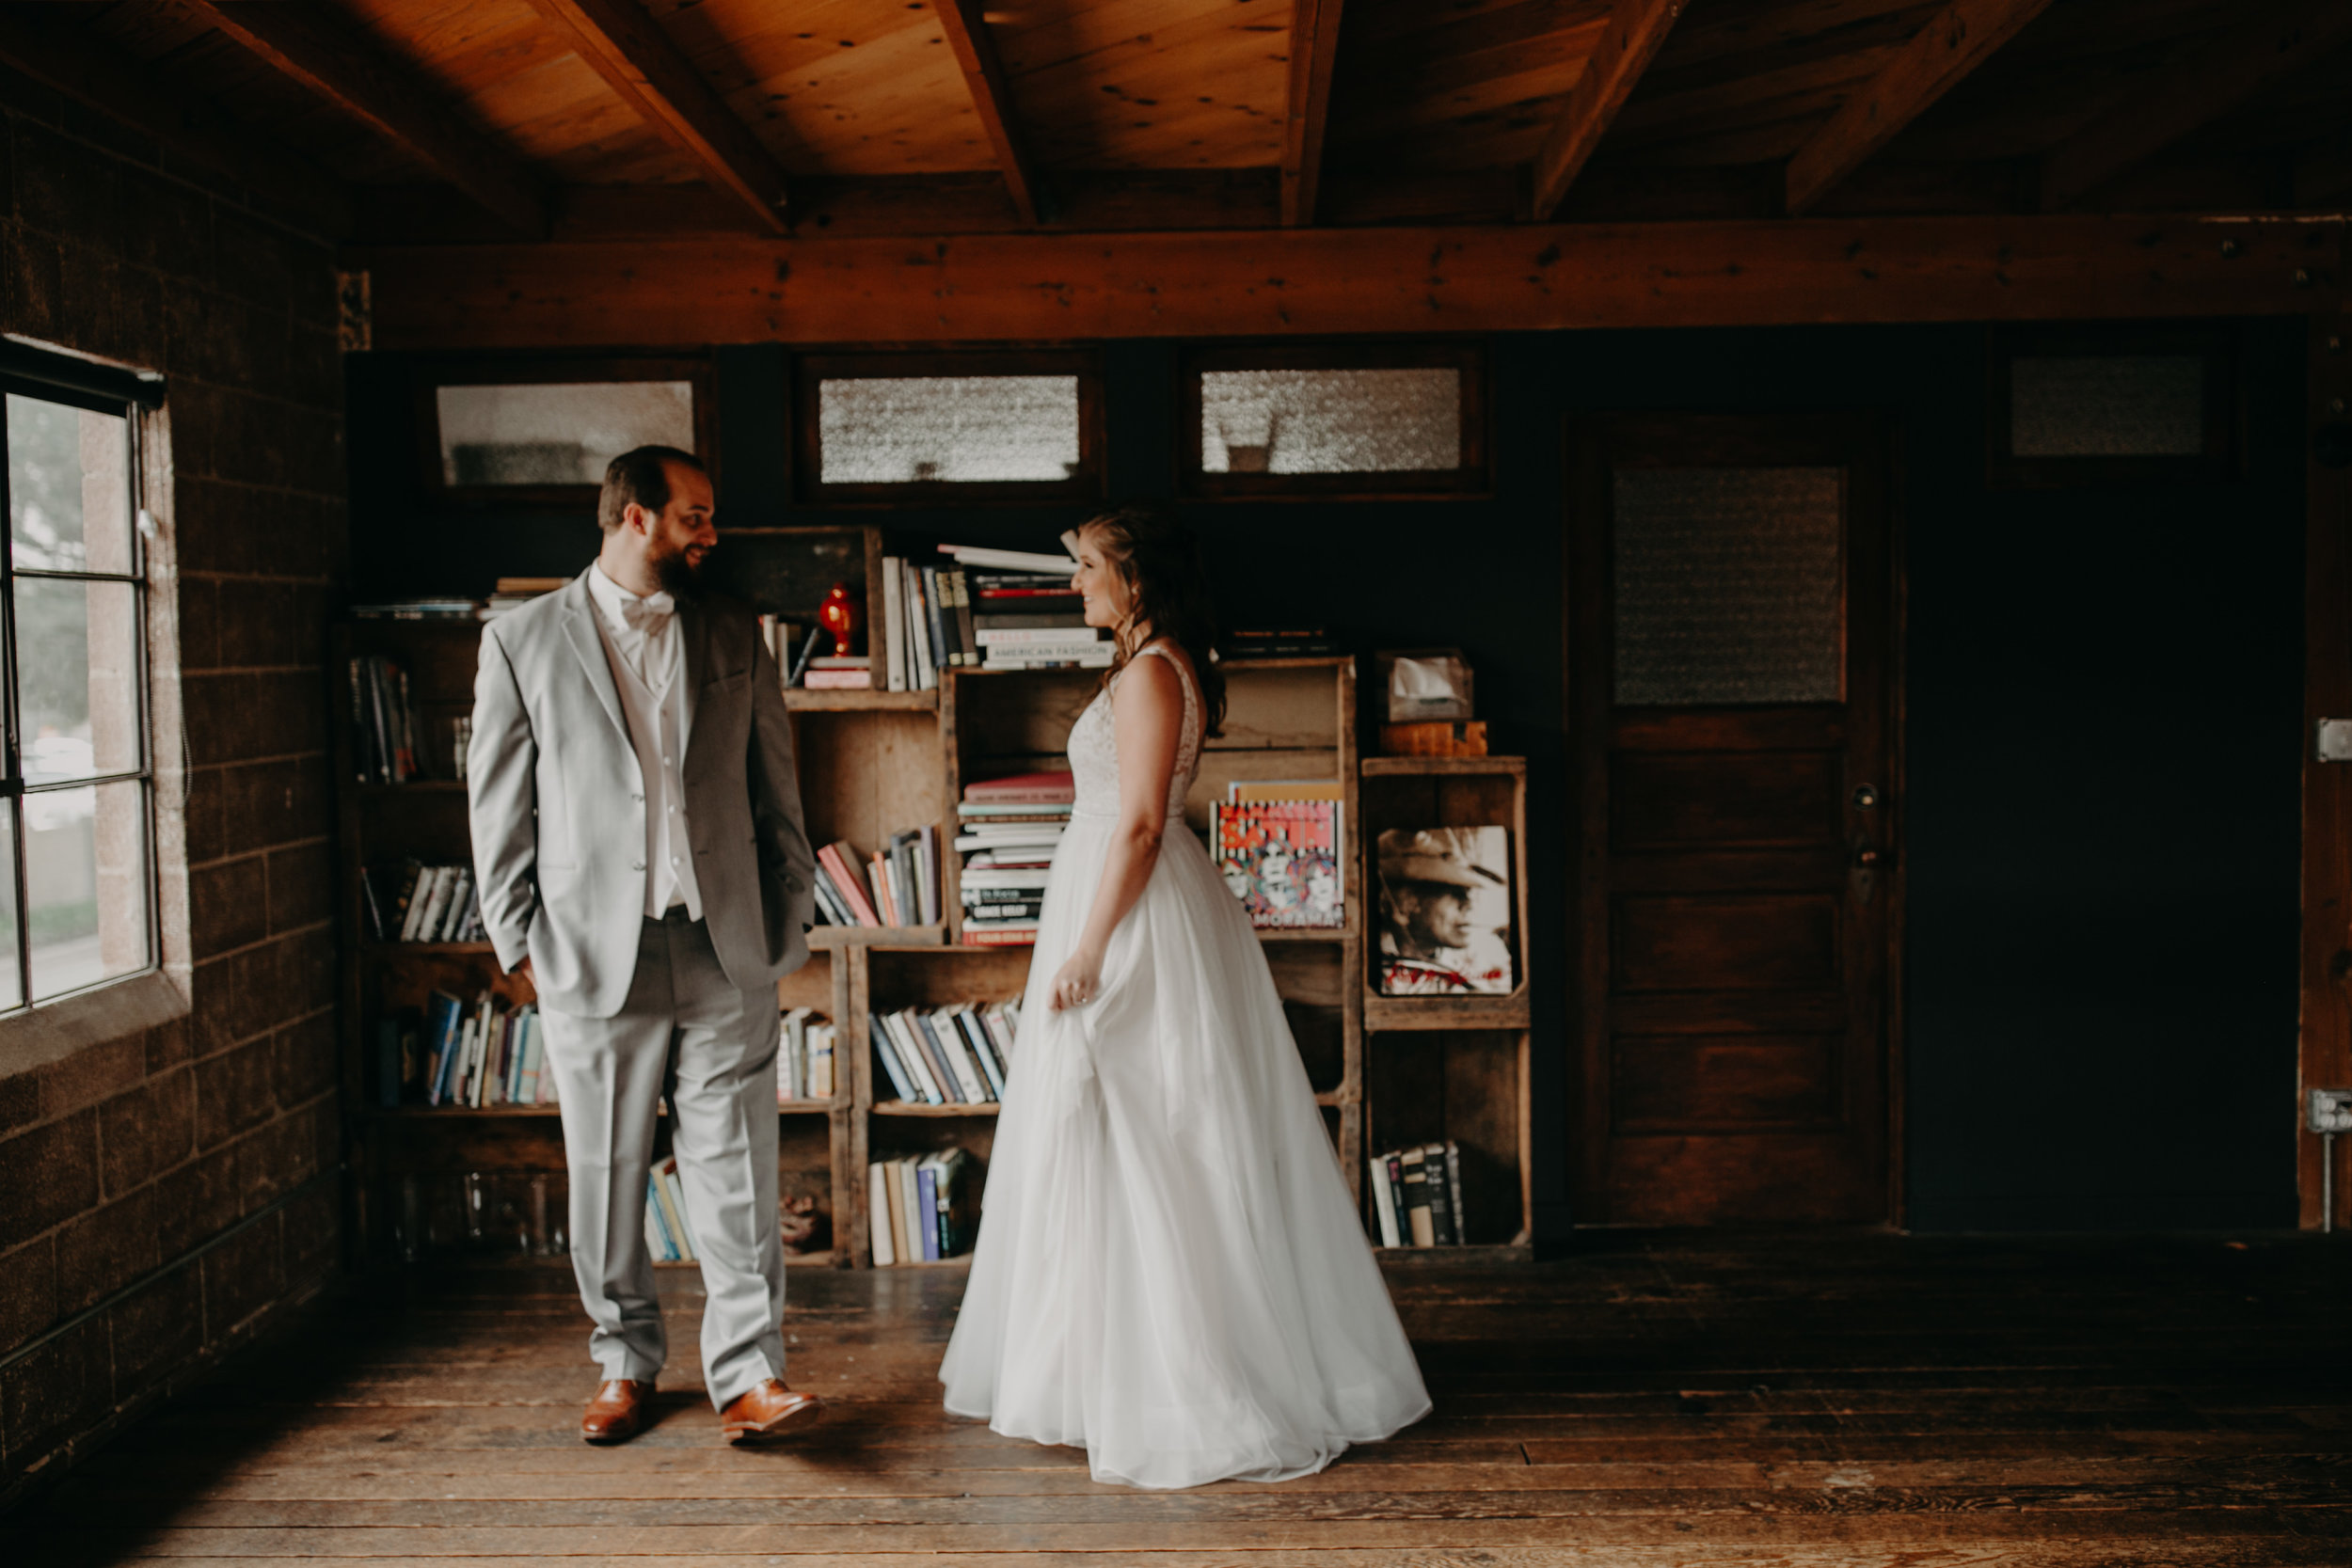 Smoky Hollow Studios Wedding Anne & Lewis Emily Magers Photography-197.jpg